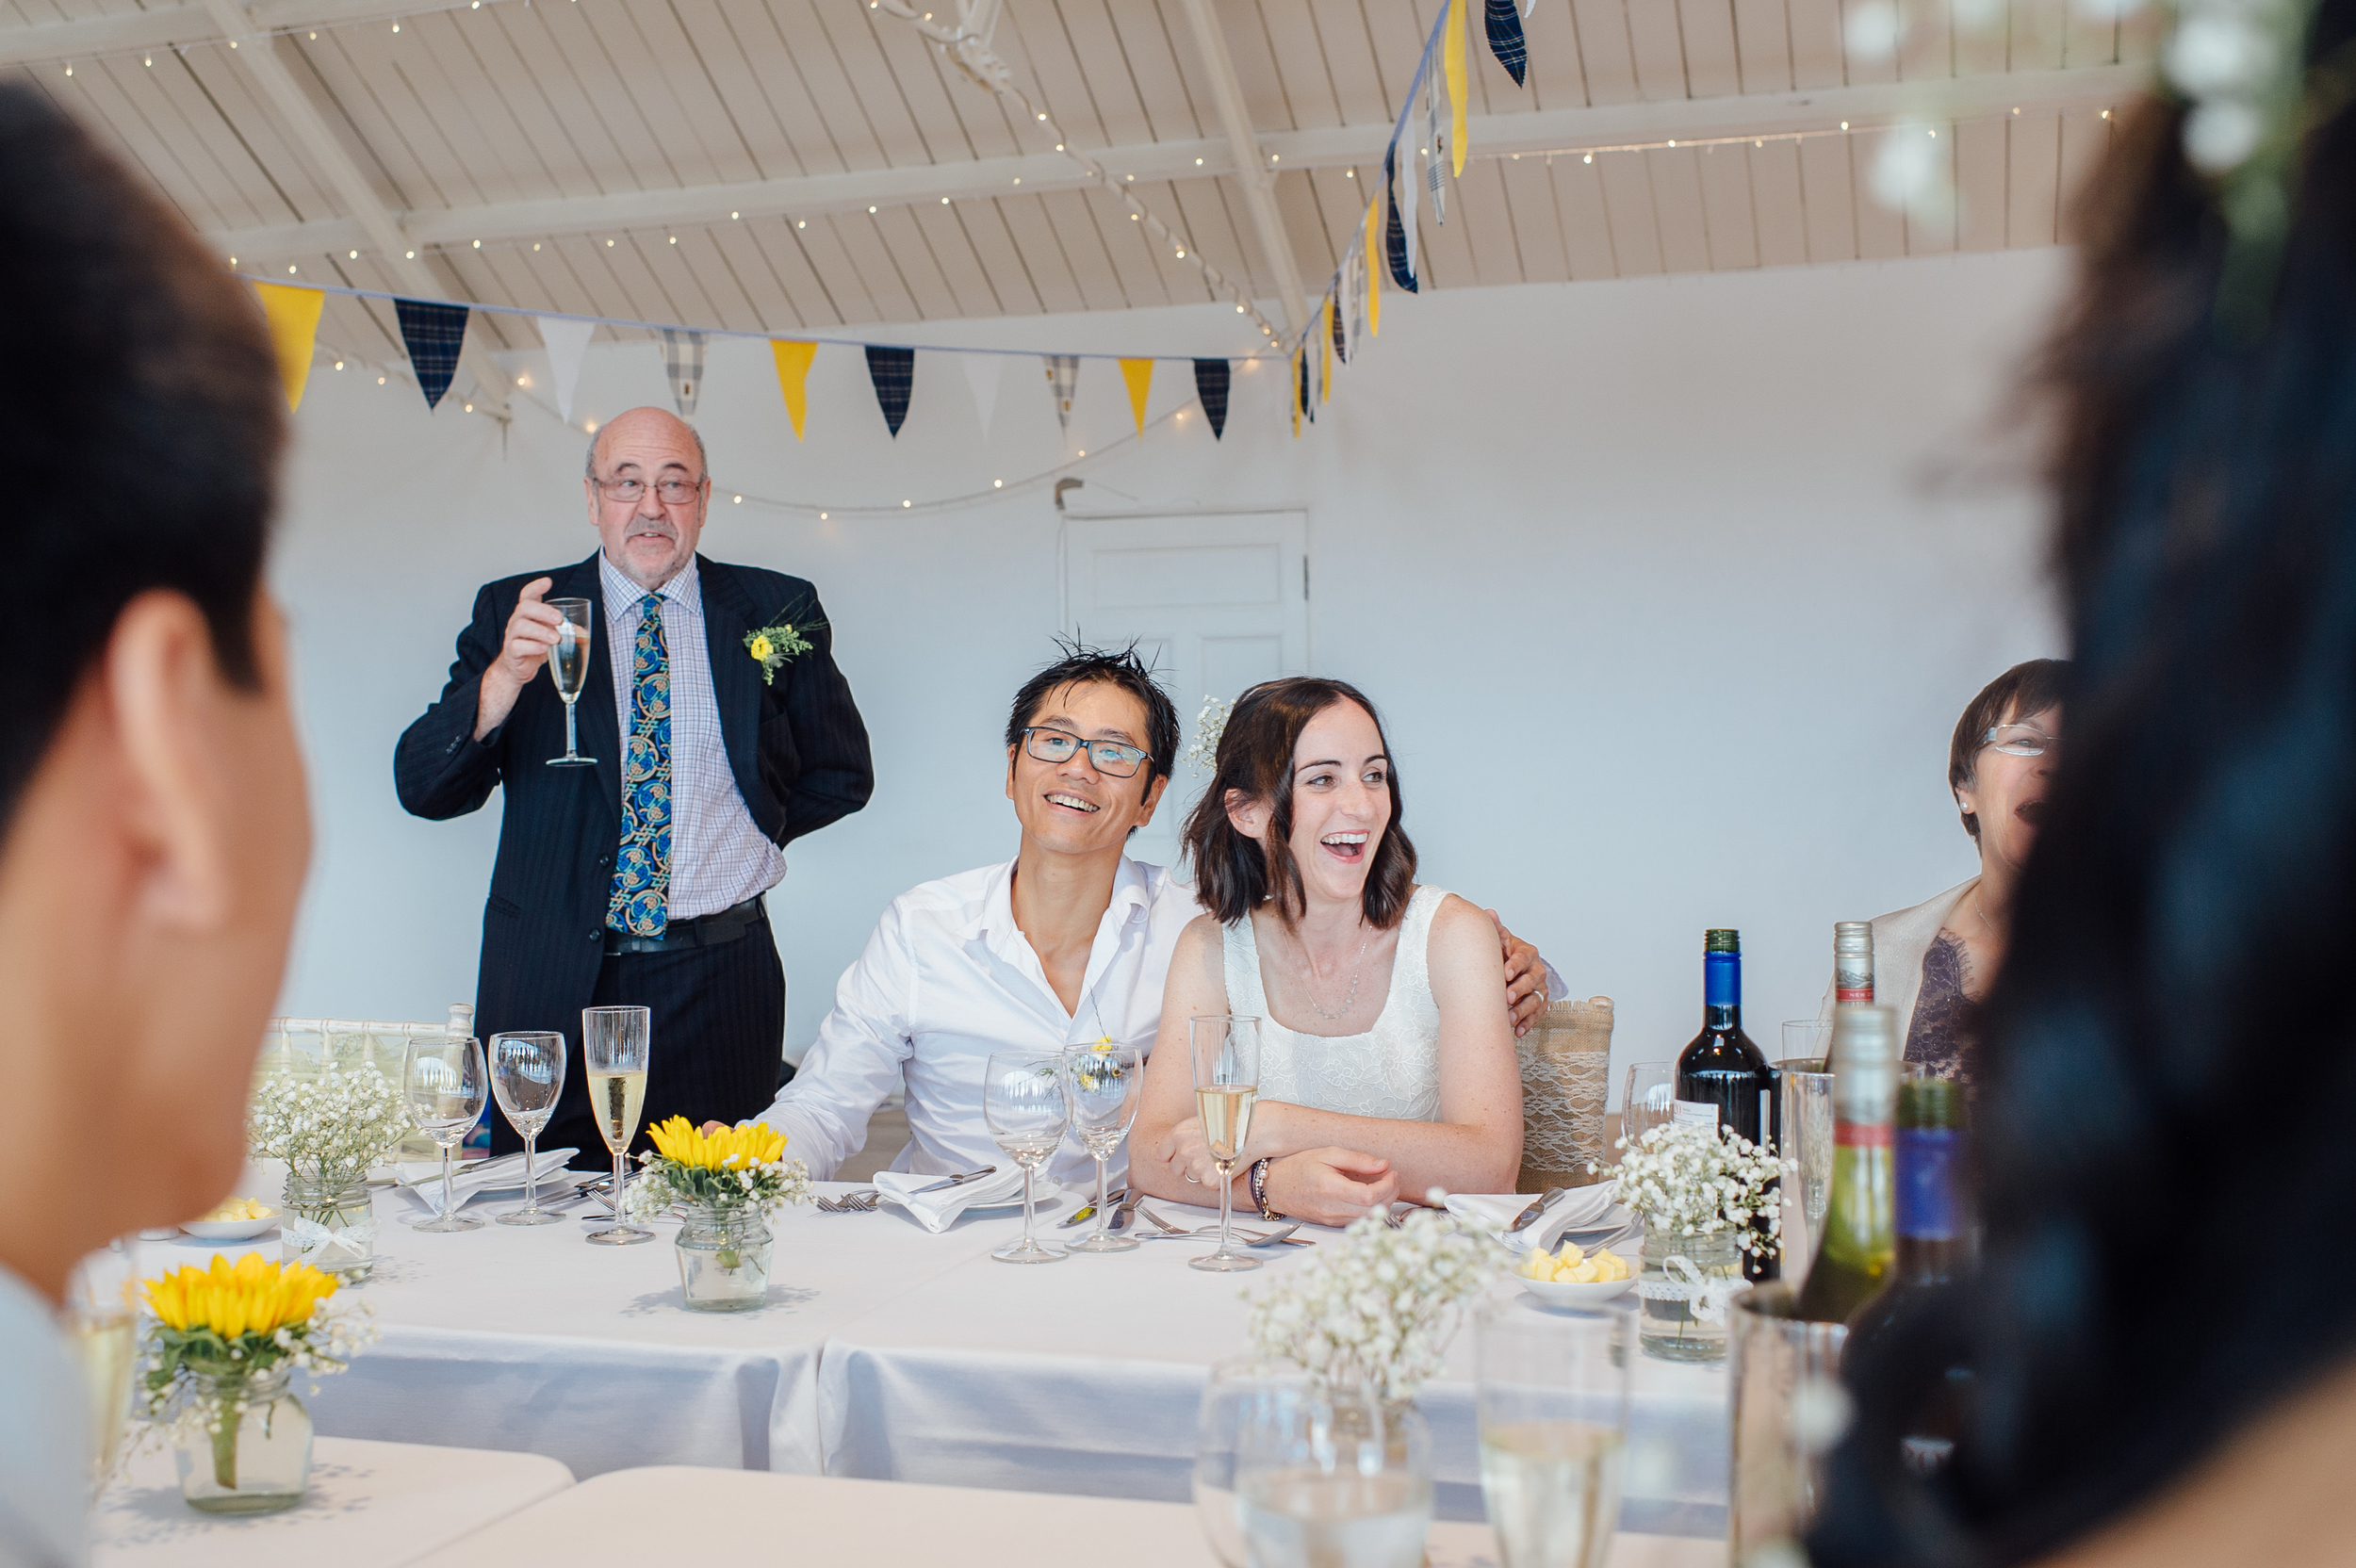 193-lisa-devine-photography-alternative-creative-wedding-photography-glasgow-crear-scotland-ukA.JPG